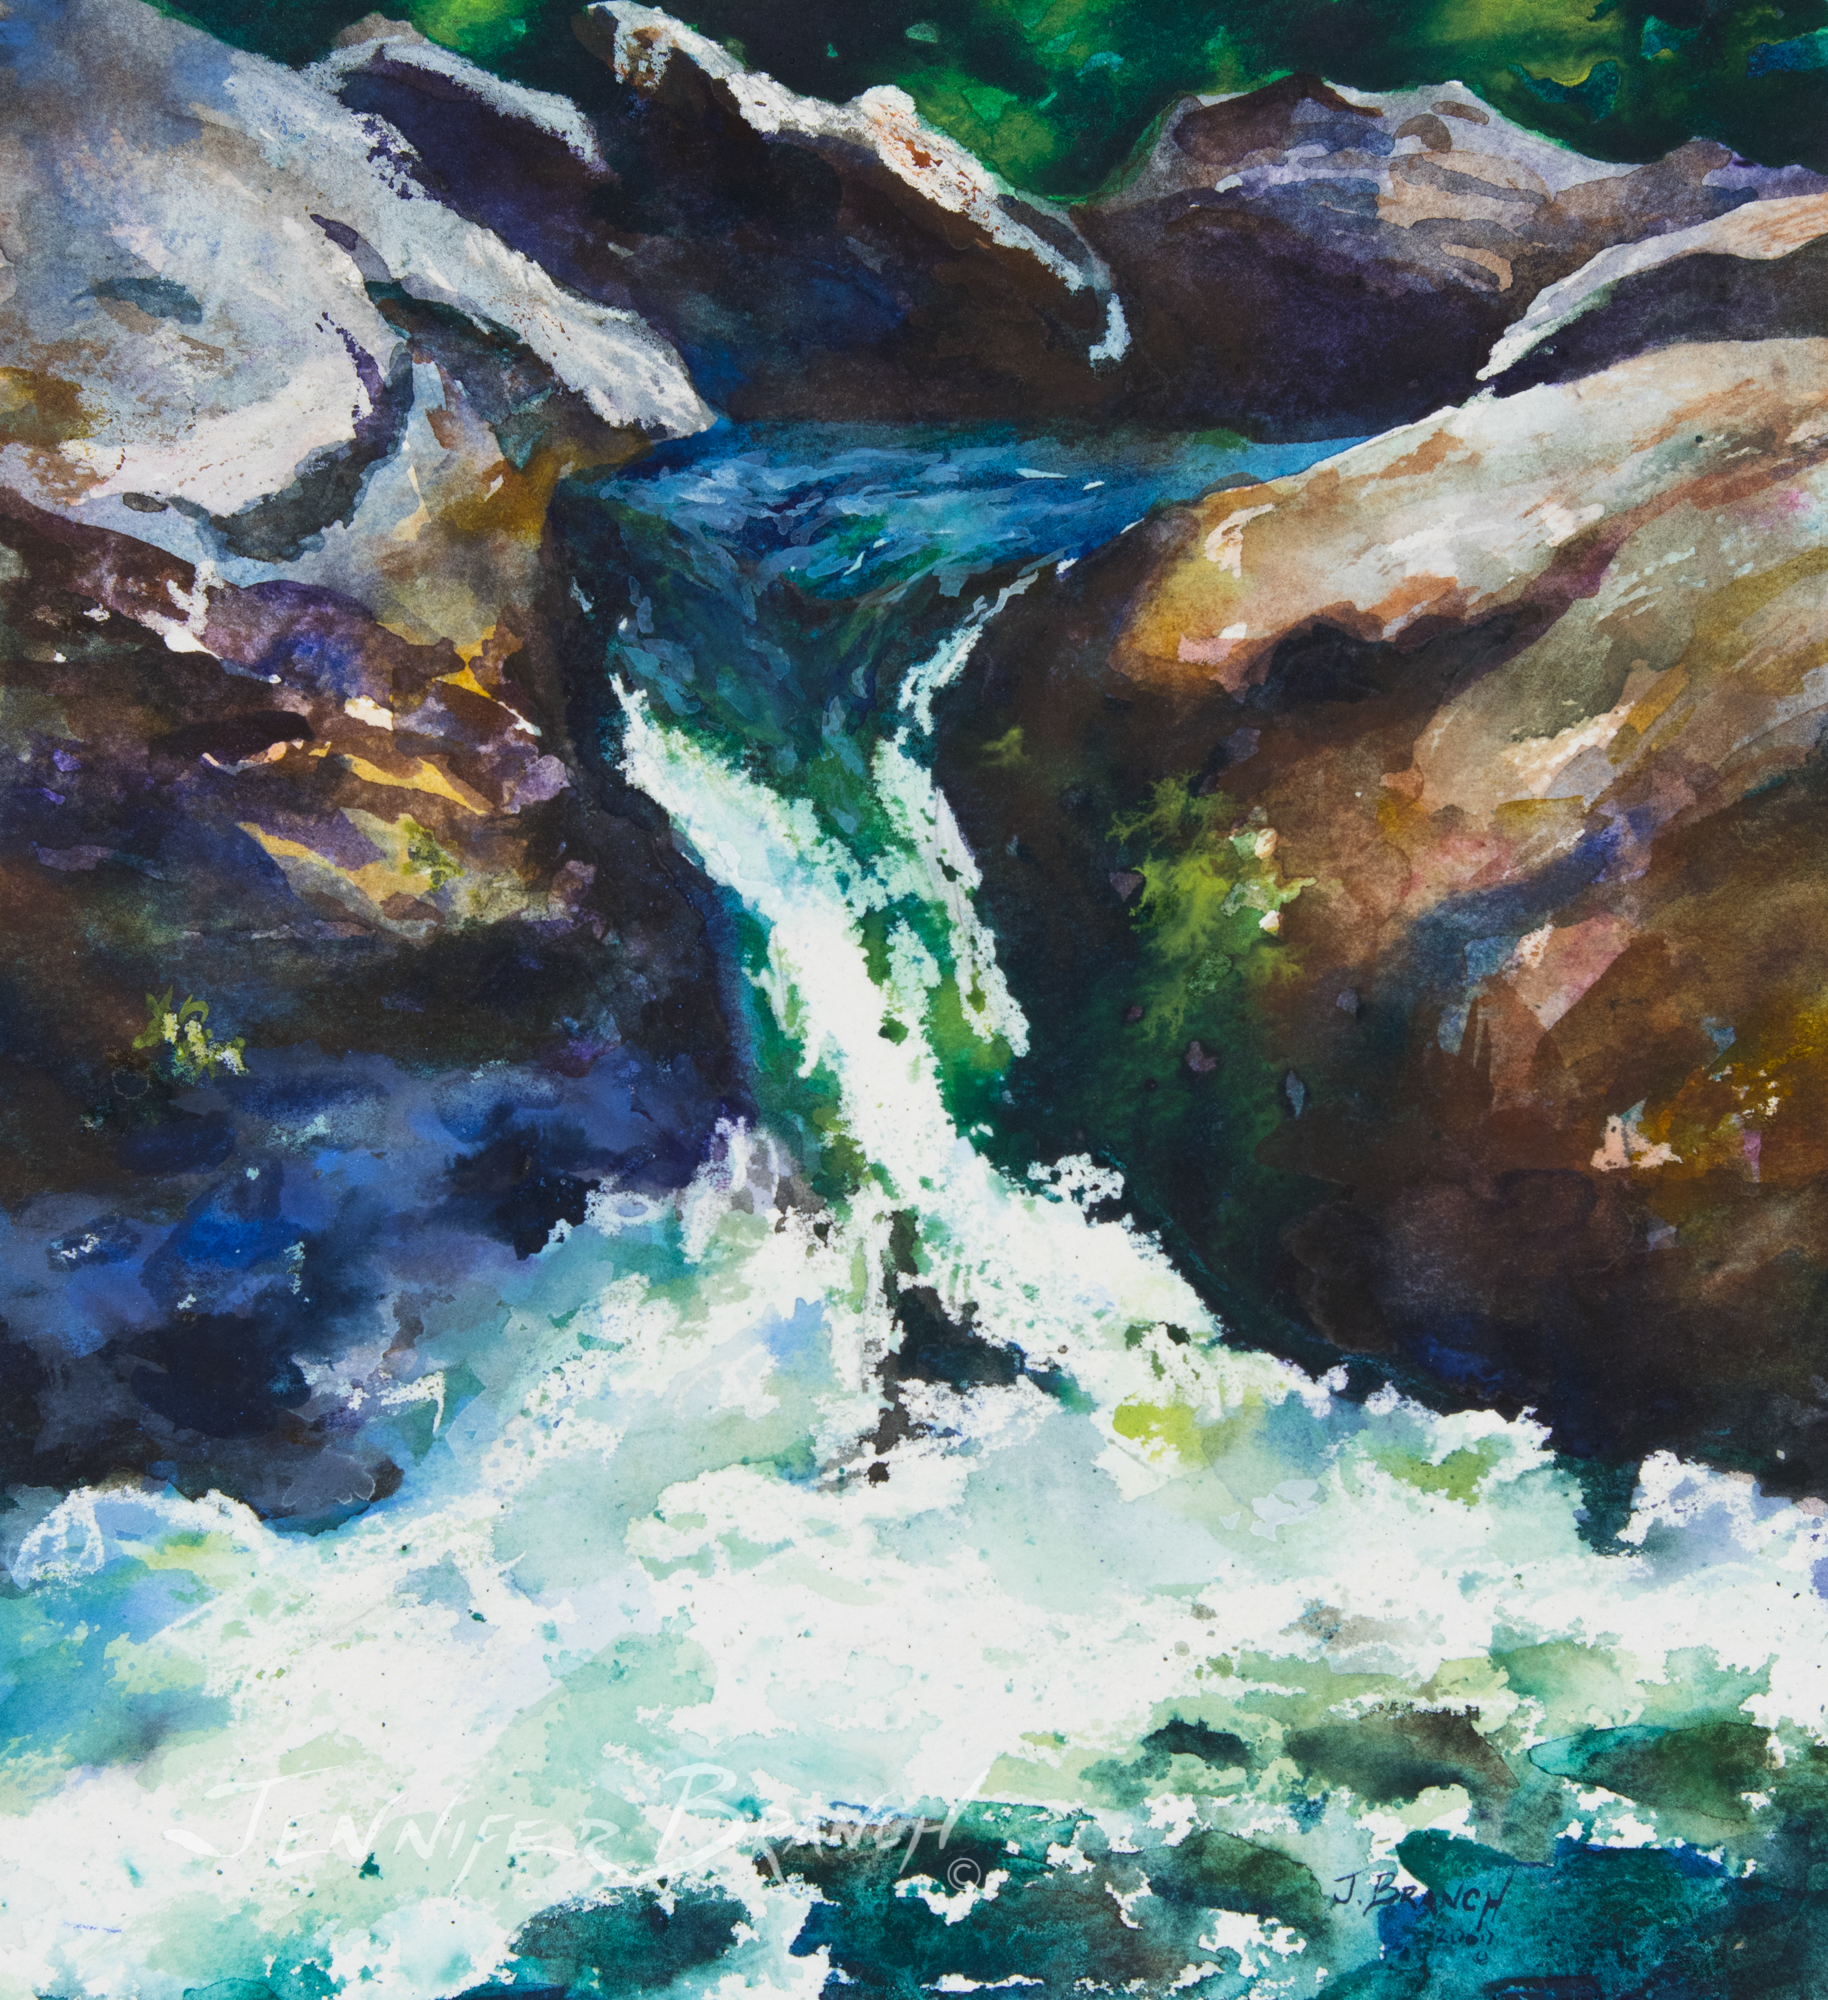 Chattooga Waterfall watercolor painting by Jennifer Branch.